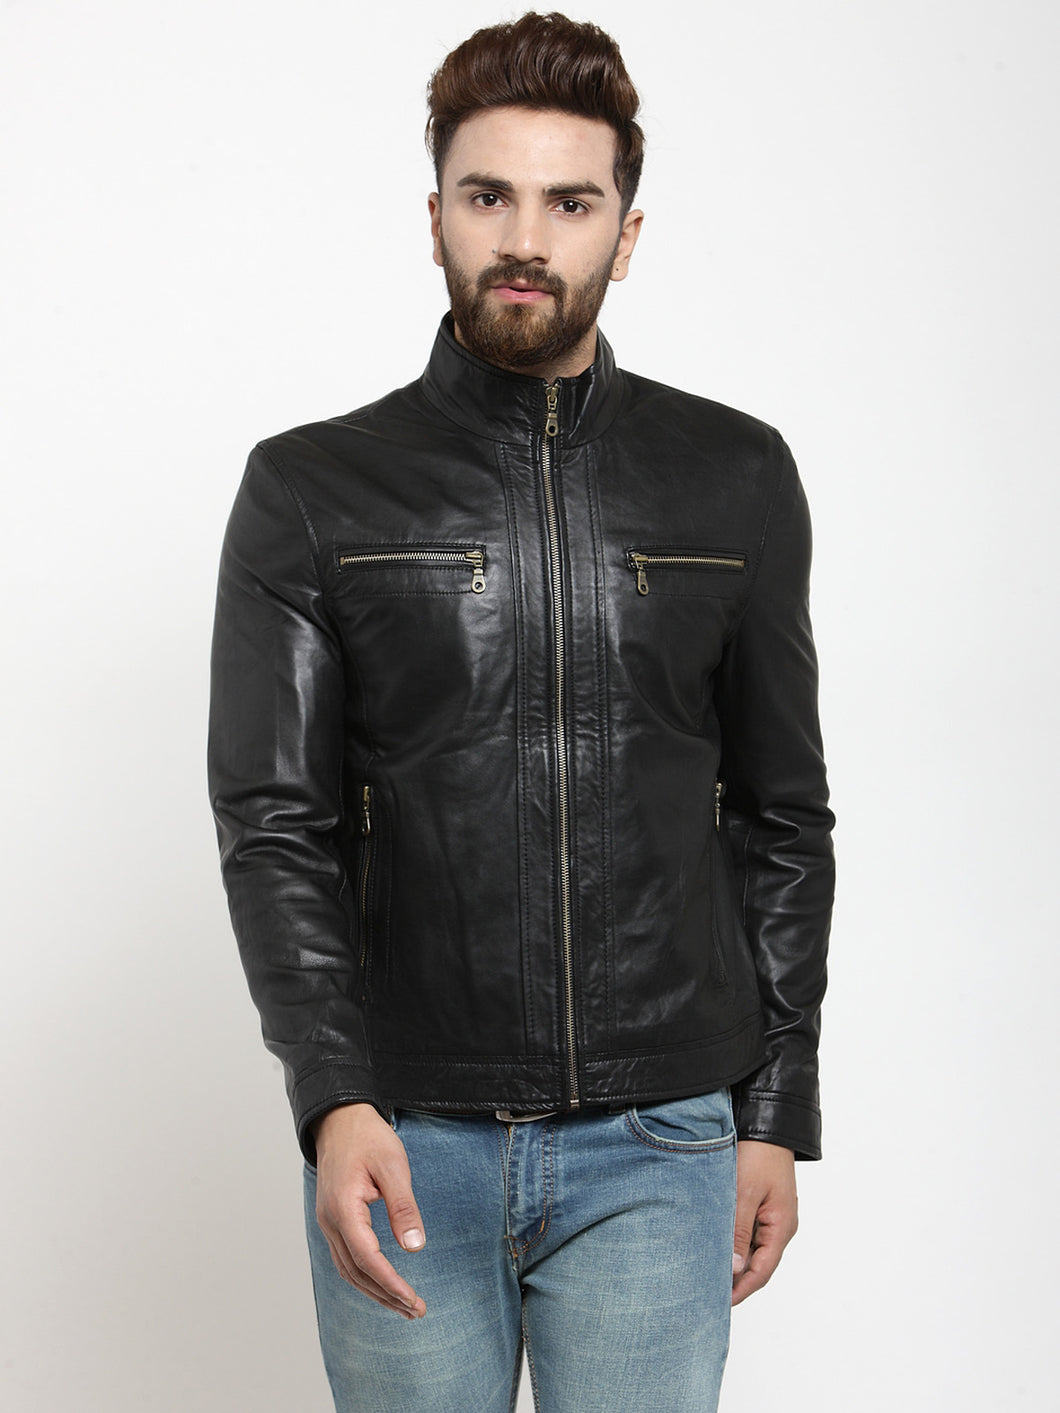 Teakwood Leathers Black Men's 100% Genuine Leather Jacket